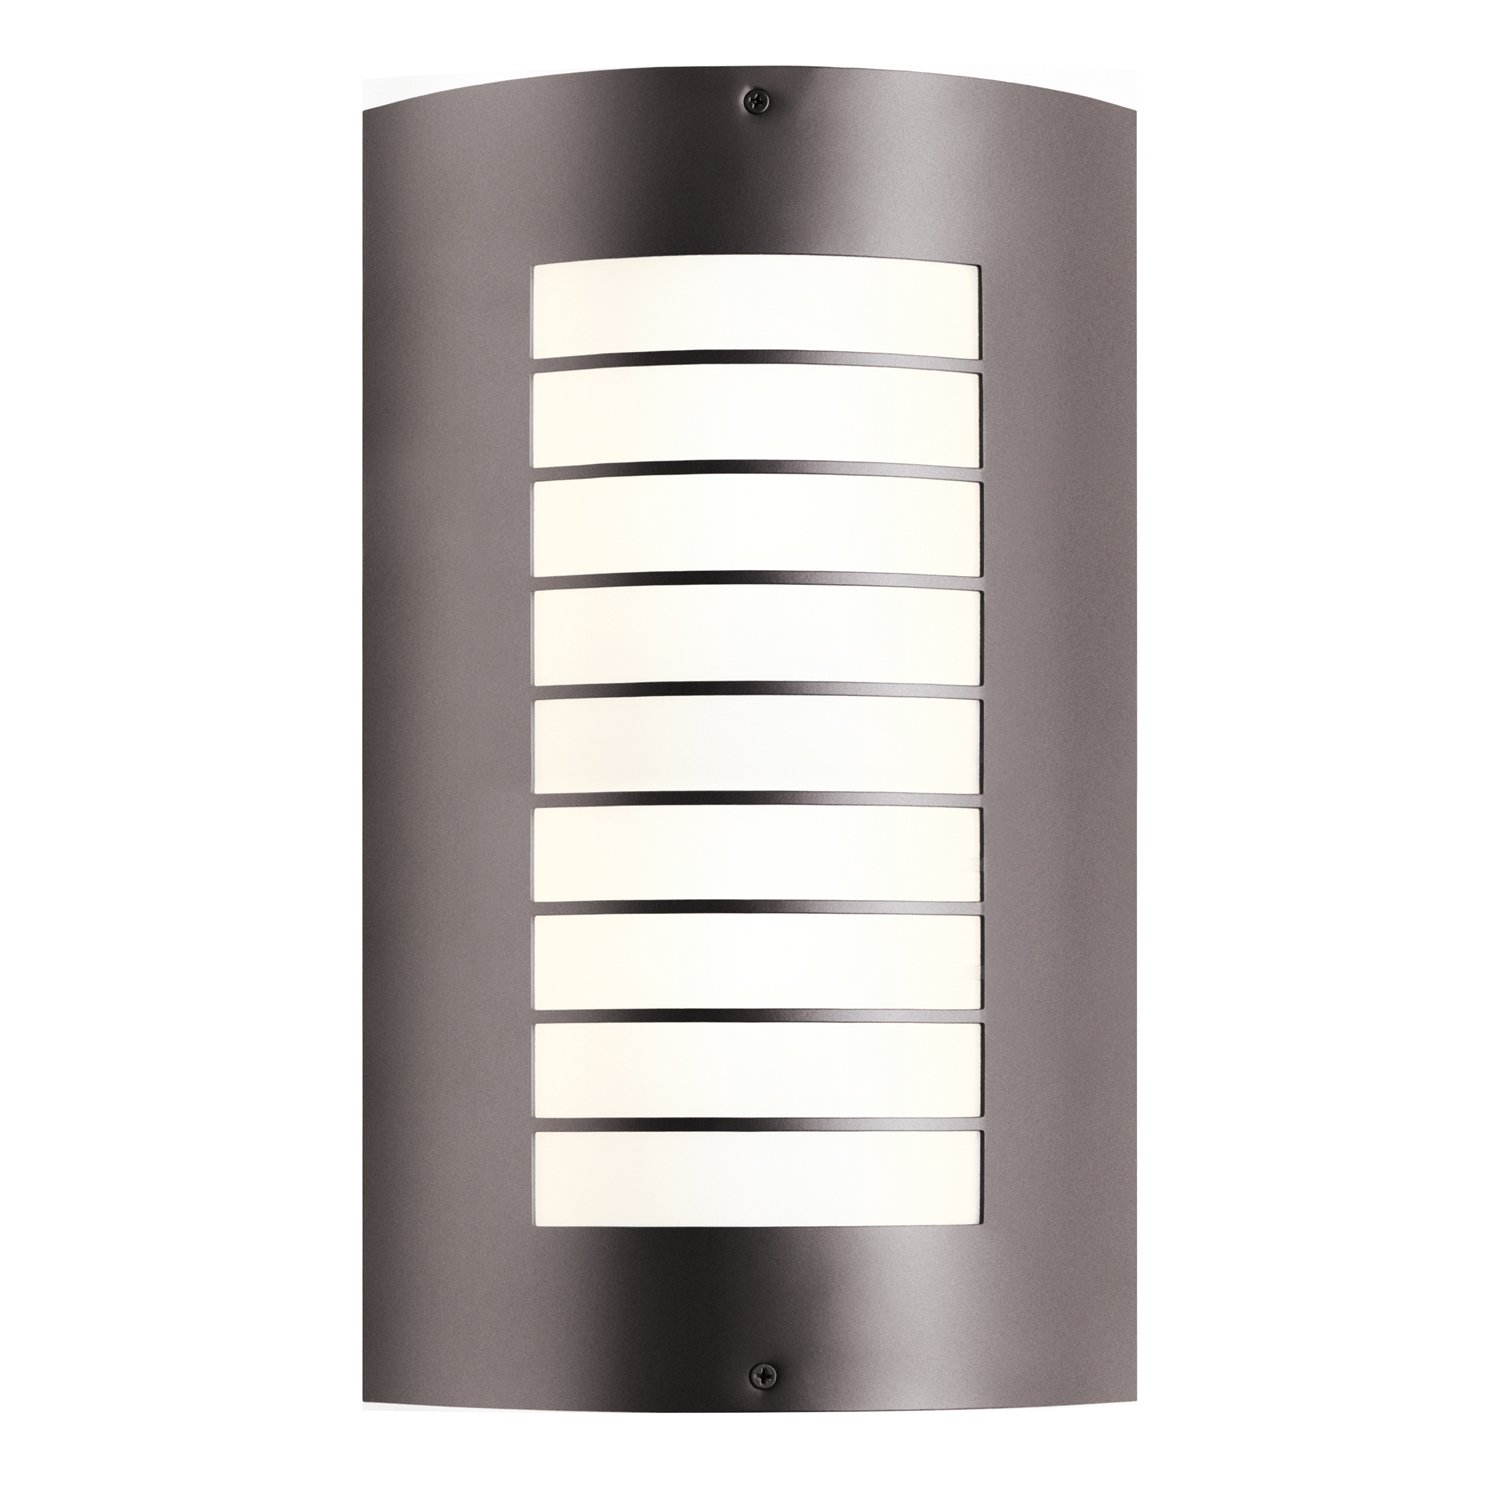 Kichler 6040ni one light outdoor wall mount wall porch lights kichler 6040ni one light outdoor wall mount wall porch lights amazon amipublicfo Gallery